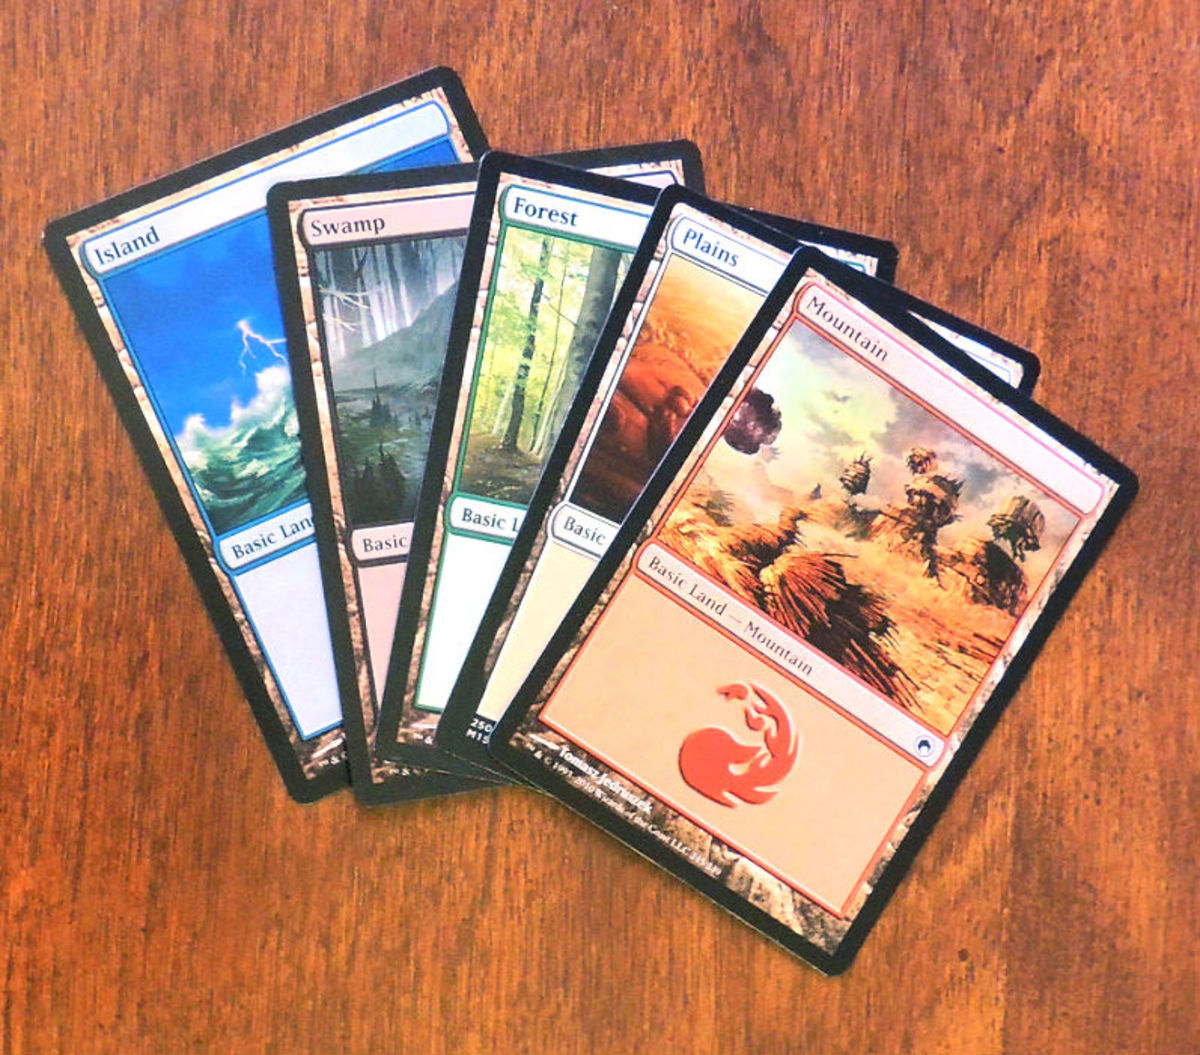 Land examples from the different card color types.